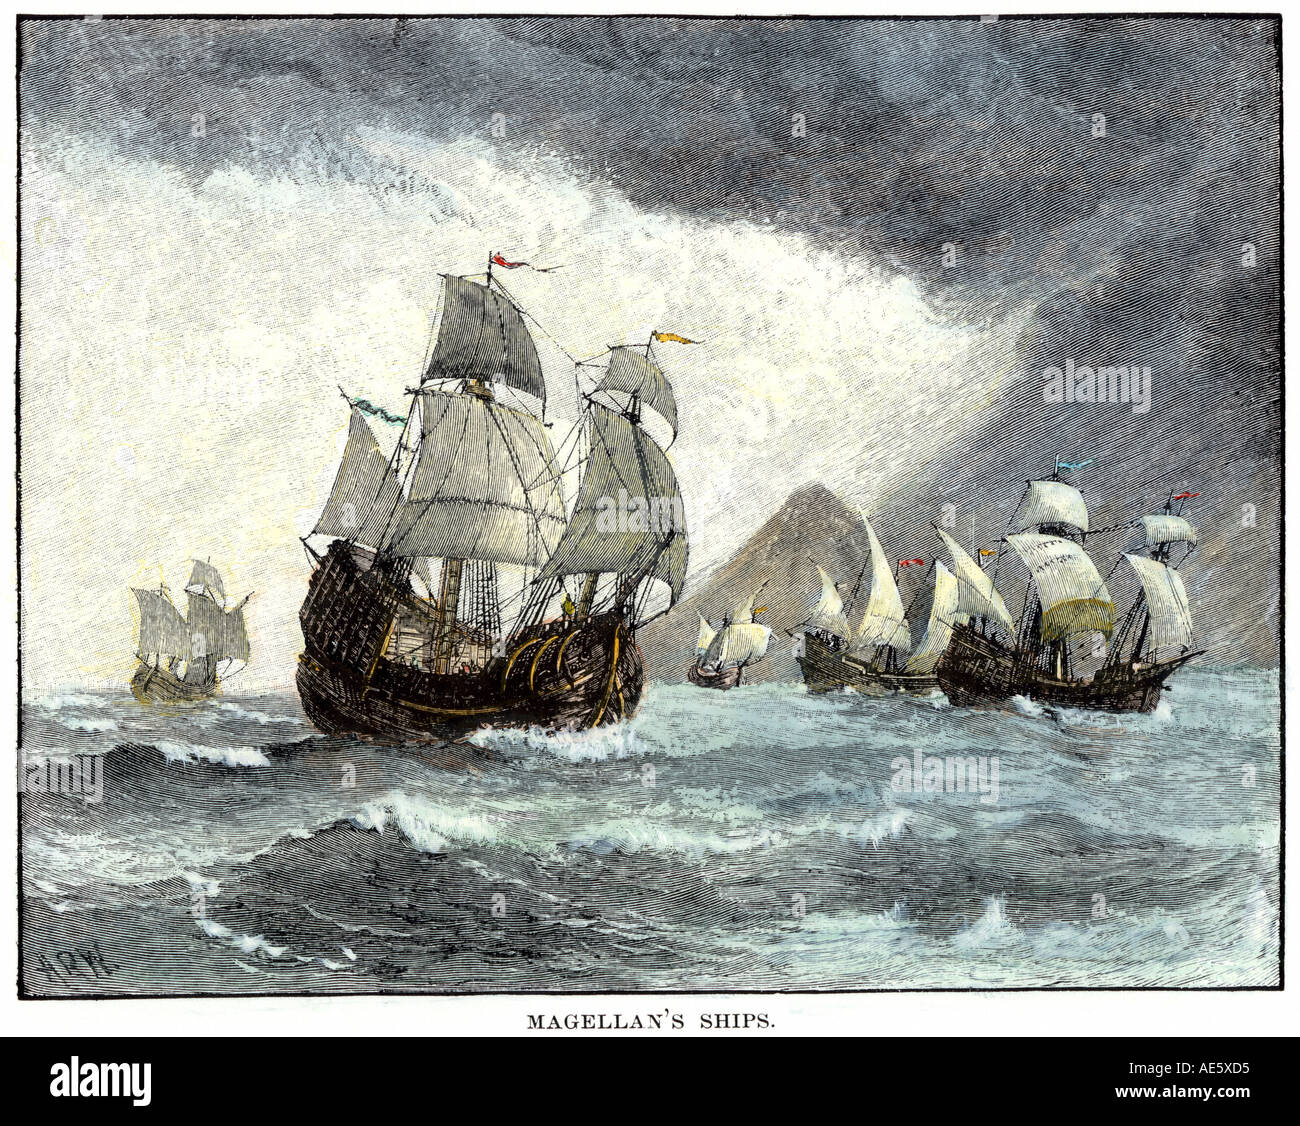 Ships of Ferdinand Magellan rounding Tierra del Fuego to circumnavigate the earth 1519 to 1521. Hand-colored woodcut - Stock Image